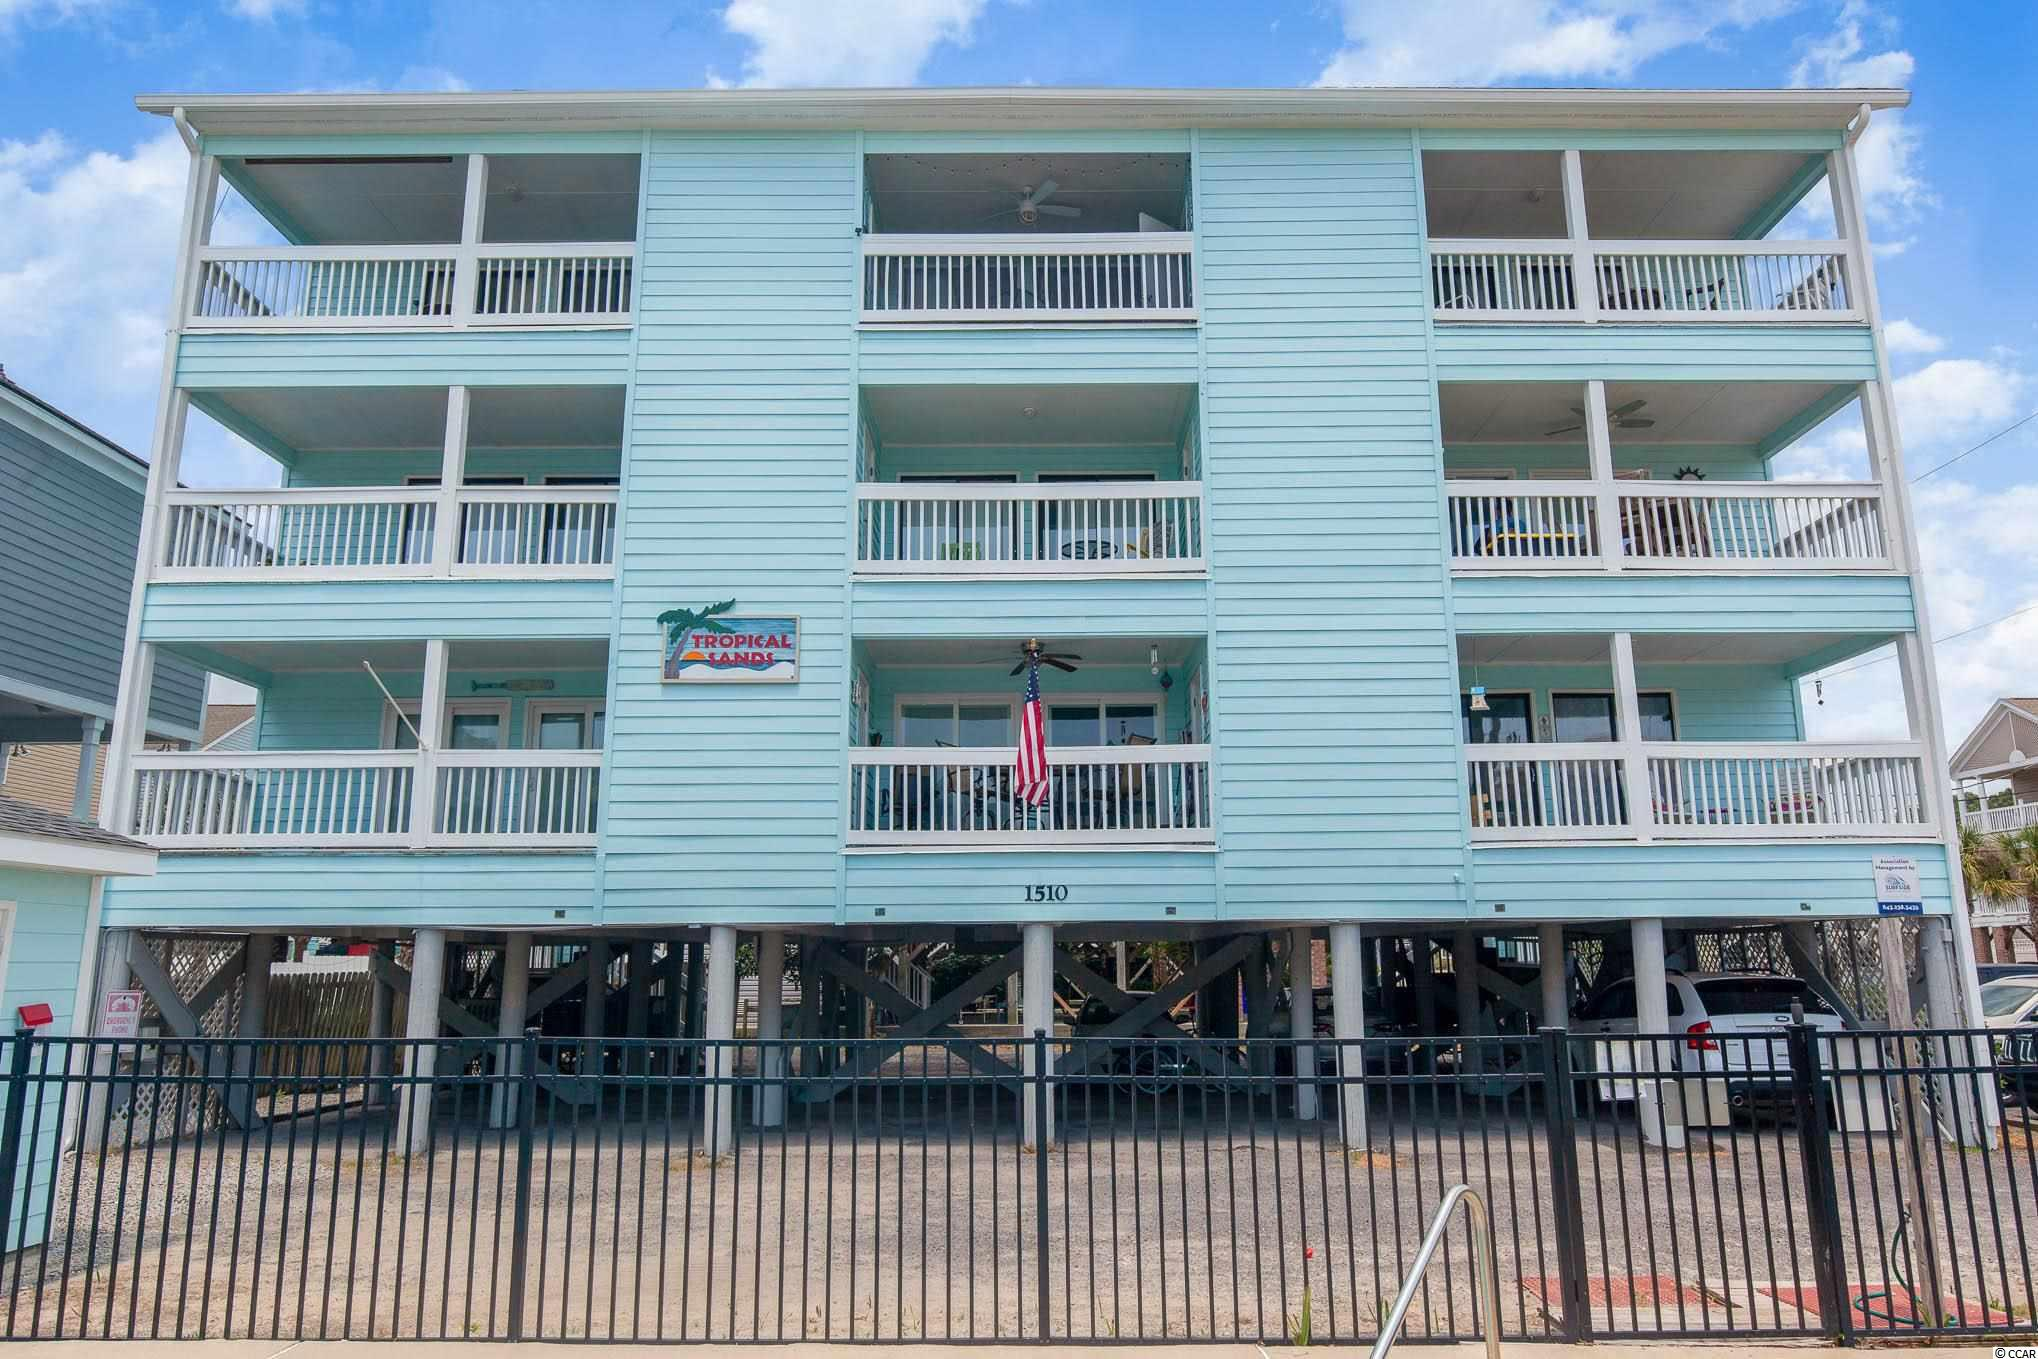 Welcome to Tropical Sands in the heart of Surfside Beach!  Unit 101 is a two bedroom/one bath condo with an ocean view!  This is a 2nd row complex on the corner of 15th Ave S and Ocean Blvd with beach access directly across the street. Unit 101 is a first floor walk up that has been completely renovated from head to toe.  Extra large balcony for dining and relaxing.  Master bedroom enclosed to make this a true 2 bedroom.  The kitchen has new cabinets, white subway tile, and quartz countertops.  LVT Flooring throughout.  Tropical Sands has a pool for the 9 units as well as ample parking.  The exterior has just recently been painted and the building is overall well maintained and managed!  Golf cart up to the Surfside Pier, River City Cafe, or Conch Cafe.  Short drive to the Murrells Inlet Marshwalk or the Myrtle Beach Airport.  This is the perfect beach getaway spot to keep for your 2nd home or use for a rental investment.  Call your Realtor today to schedule a showing!  Sold partially furnished, ask your agent for the list.  Square footage is approximate and not guaranteed. Buyer is responsible for verification.